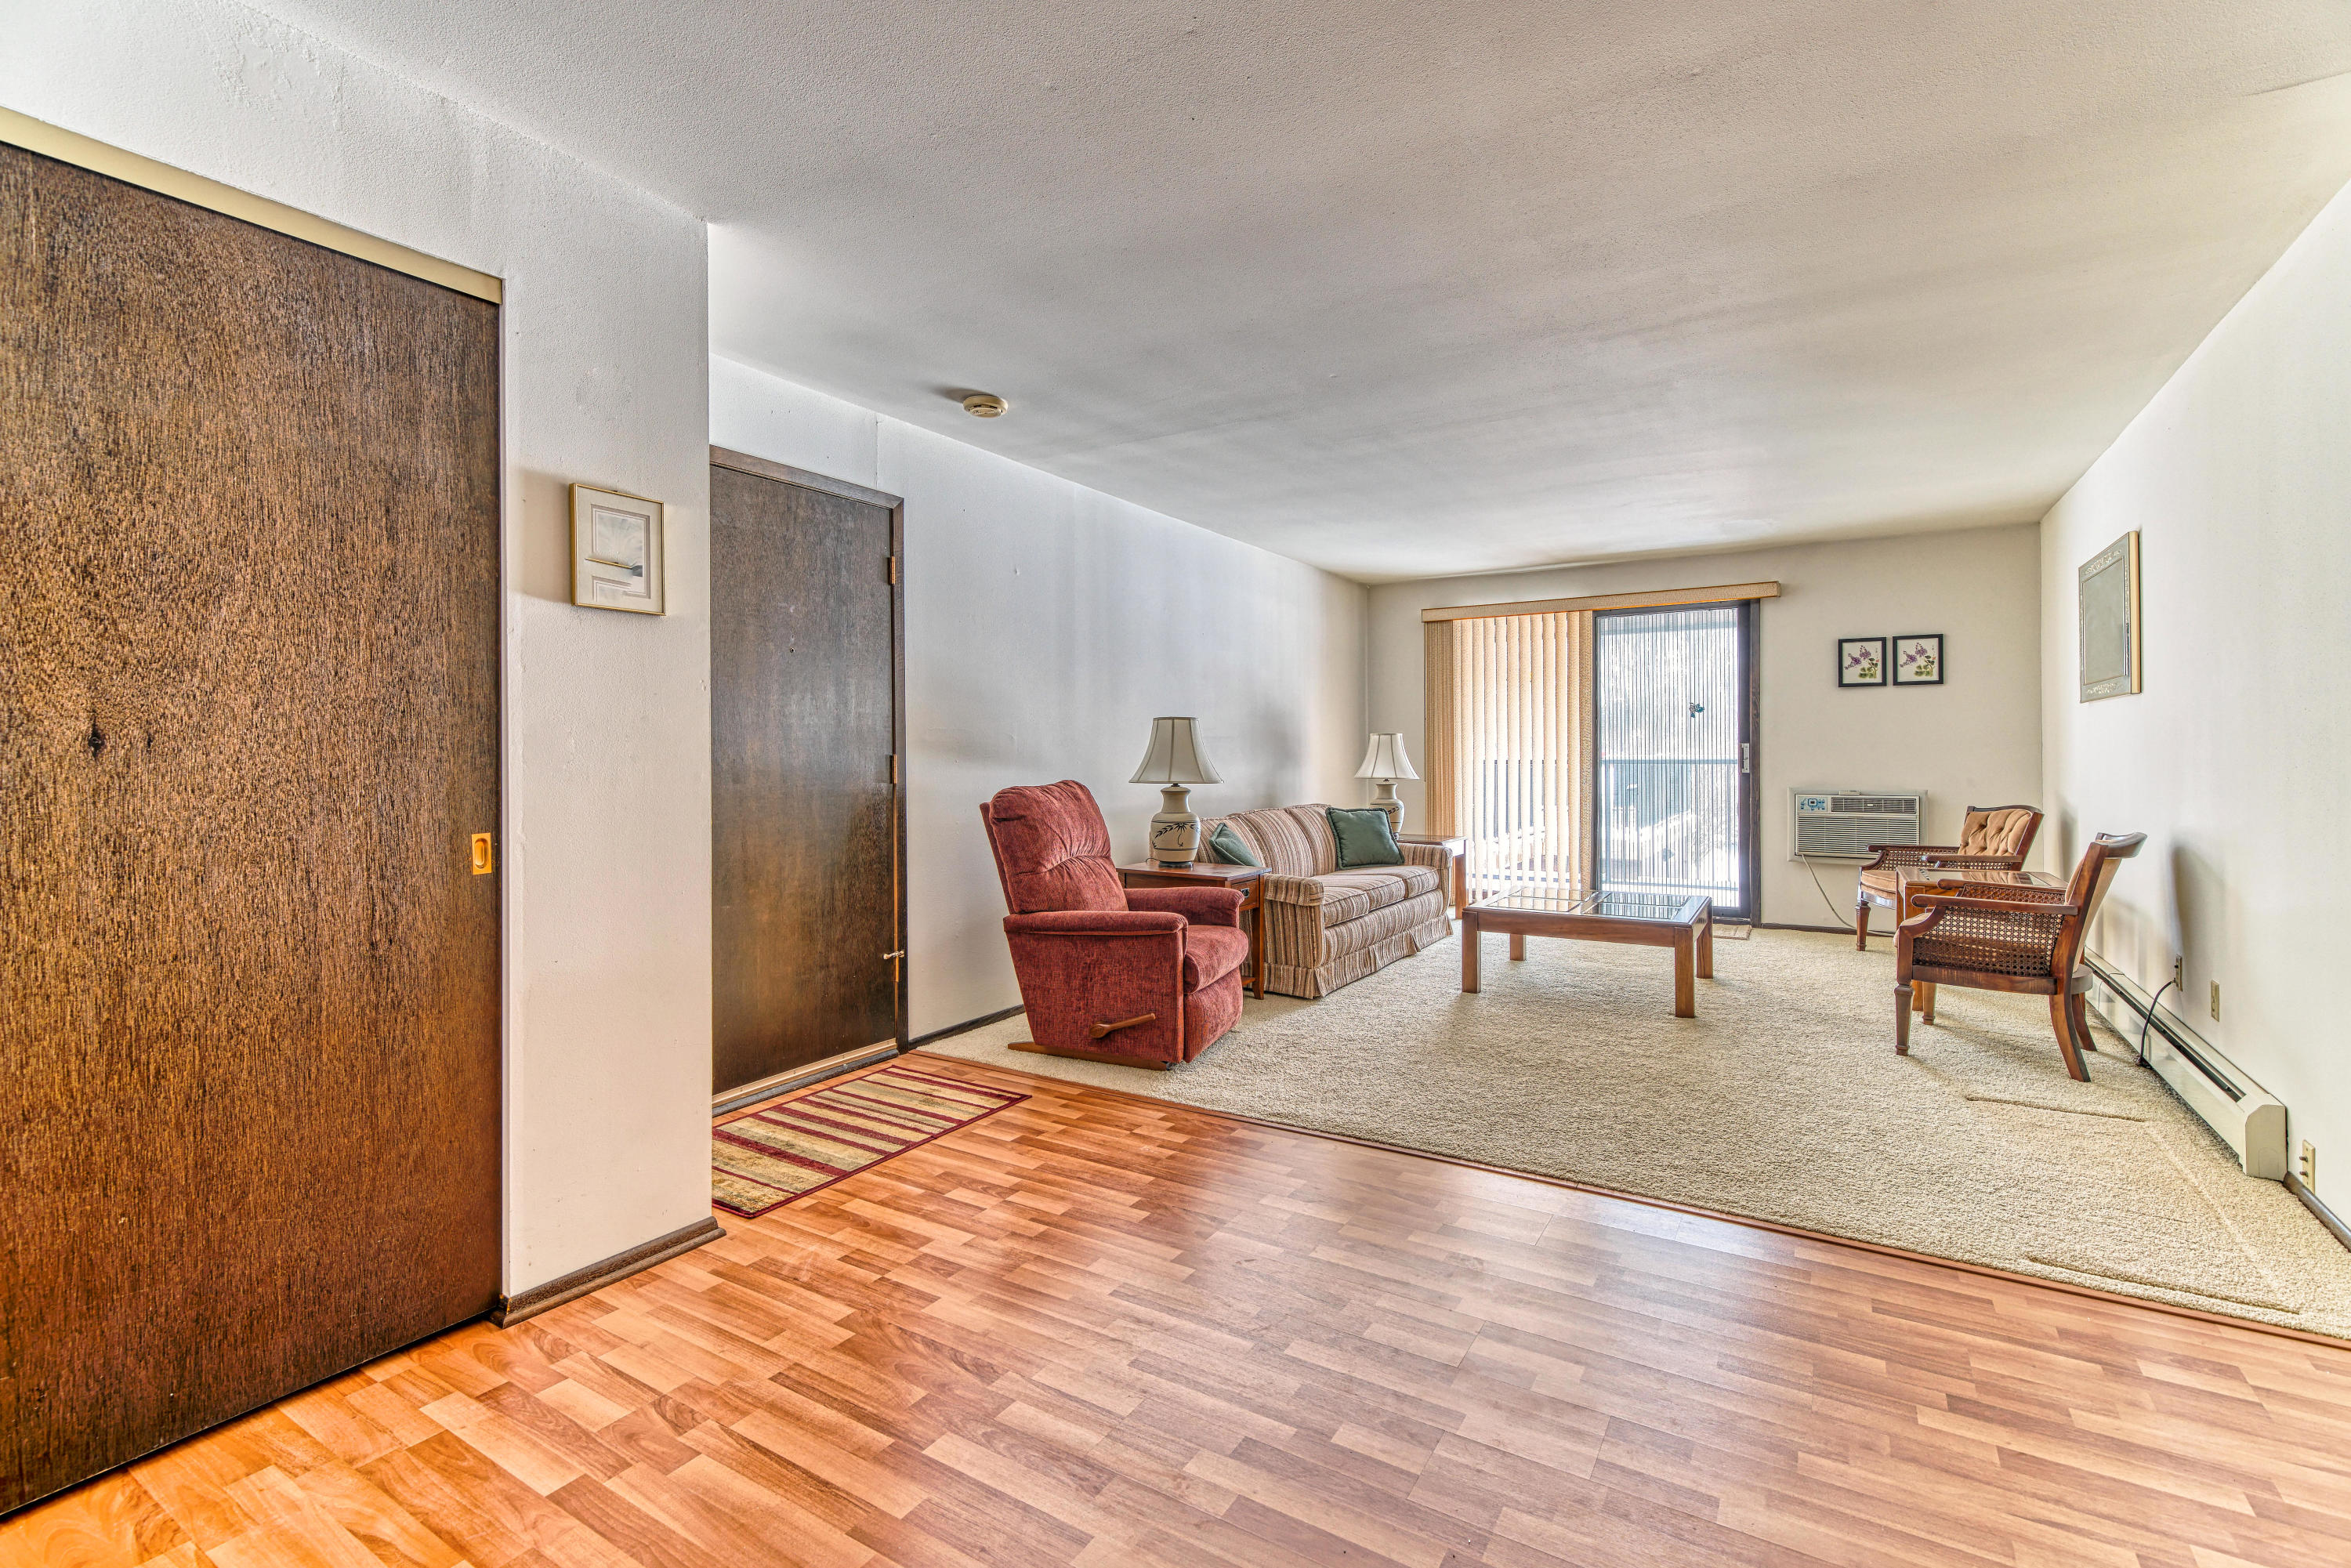 8520 Waterford Ave, Greenfield, Wisconsin 53228, 1 Bedroom Bedrooms, 3 Rooms Rooms,1 BathroomBathrooms,Condominiums,For Sale,Waterford Ave,1,1677029